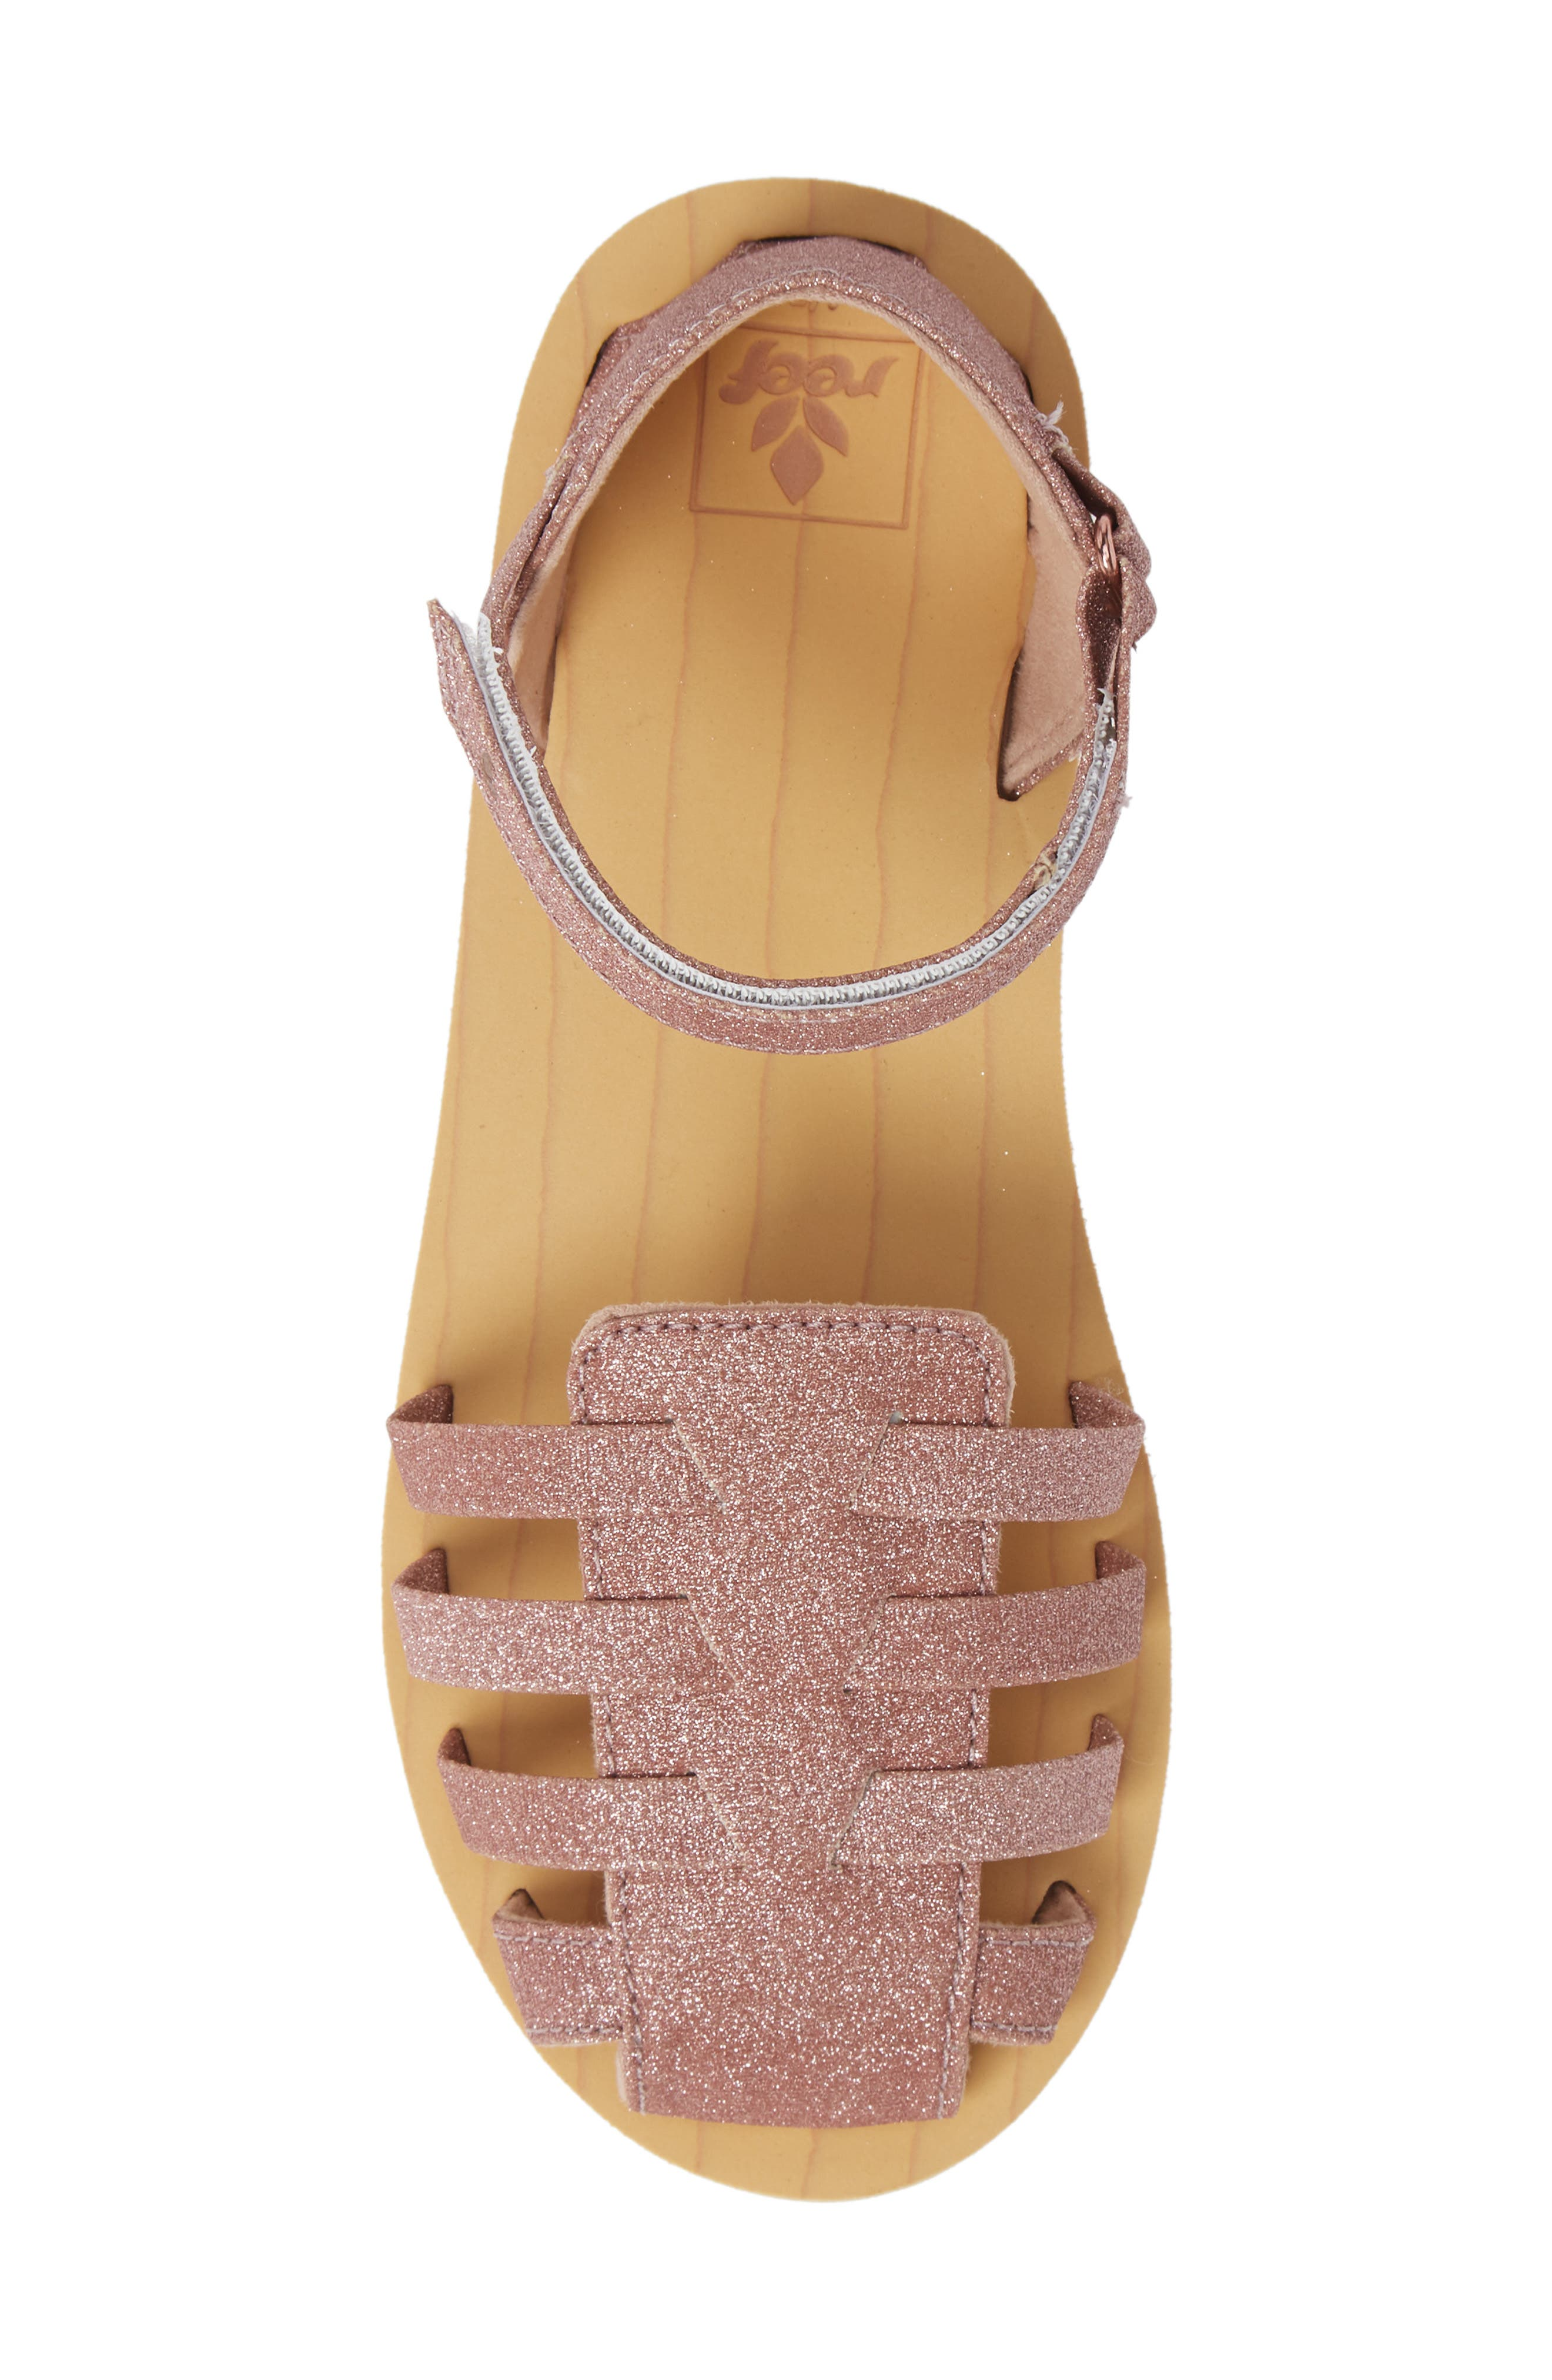 REEF, Little Reef Prep Glitter Fisherman Sandal, Alternate thumbnail 5, color, ROSE